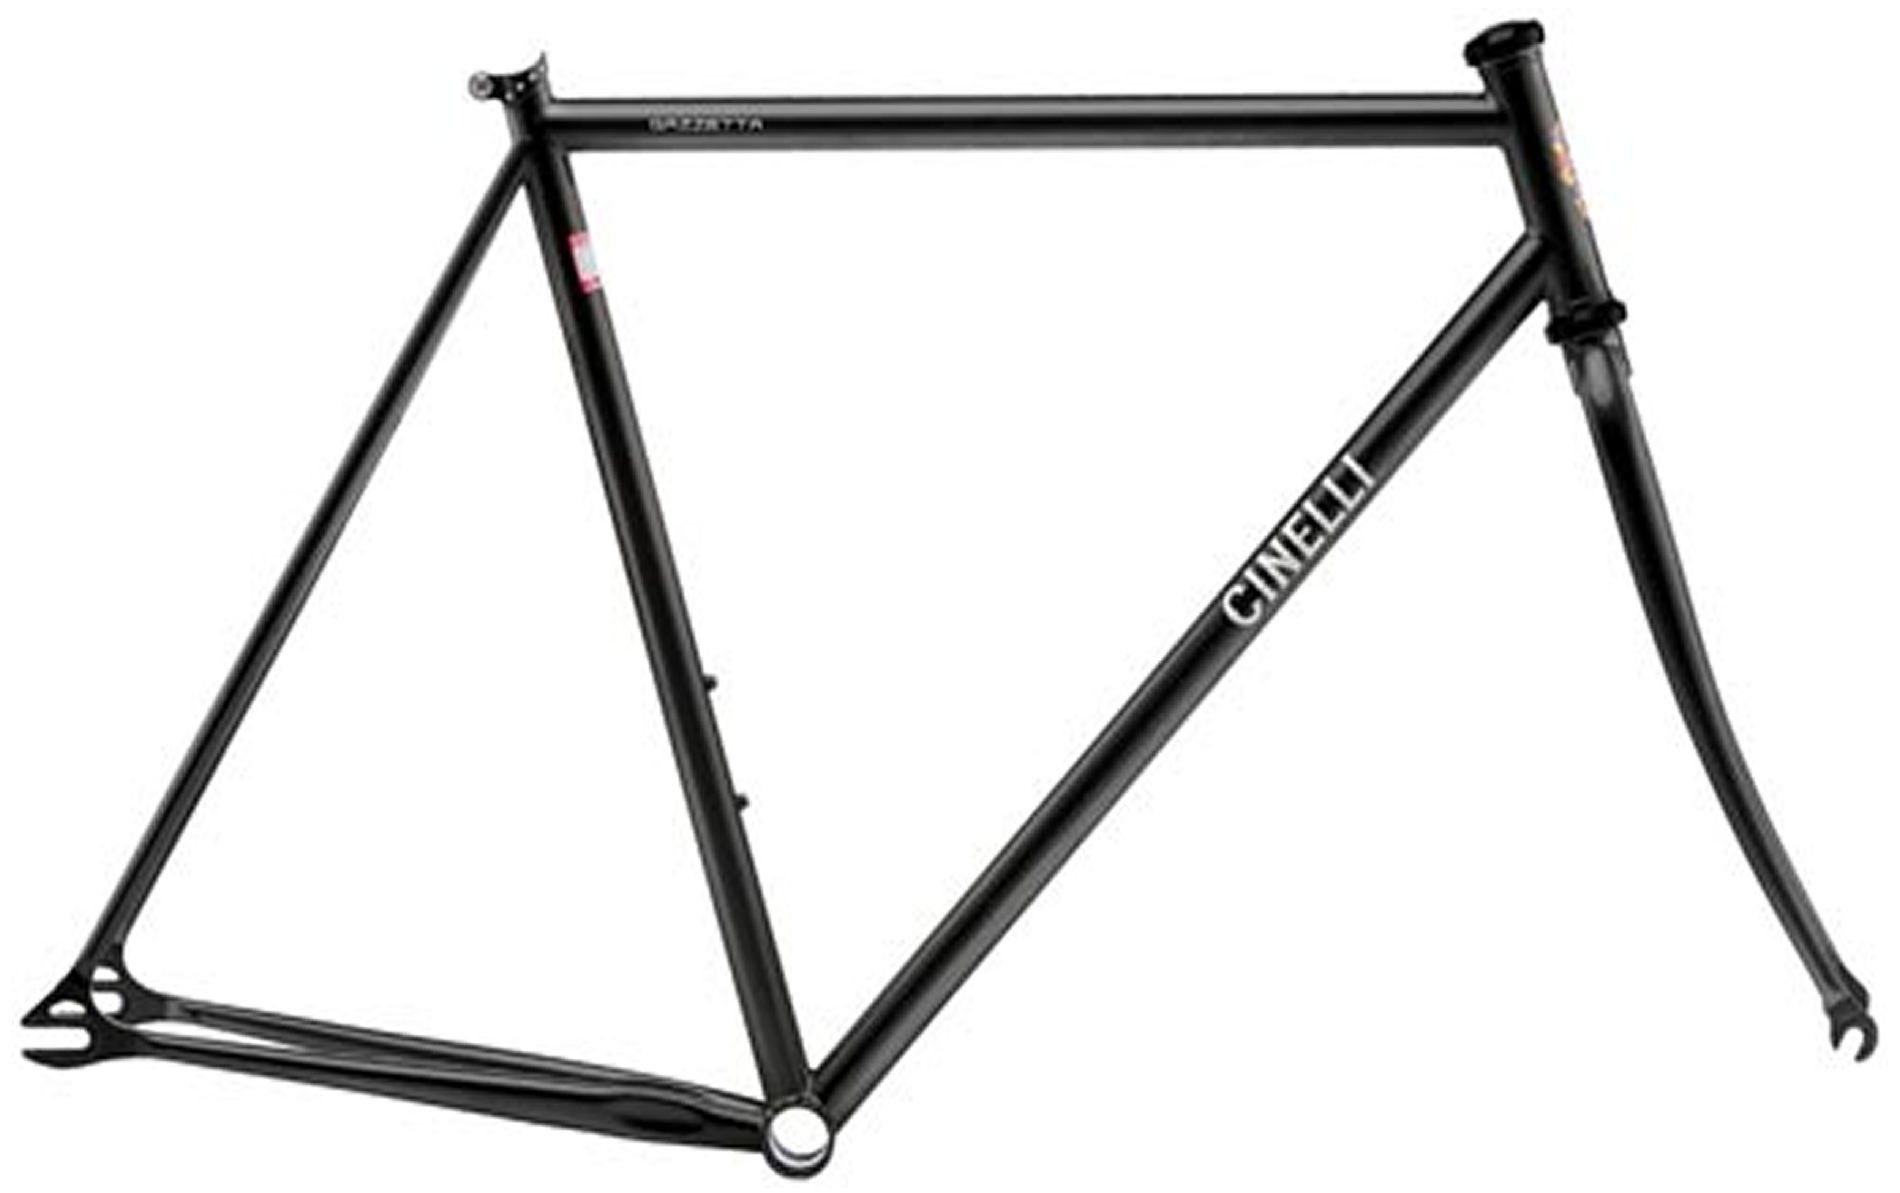 frames for sale | Jetnikoff Bicycle co.